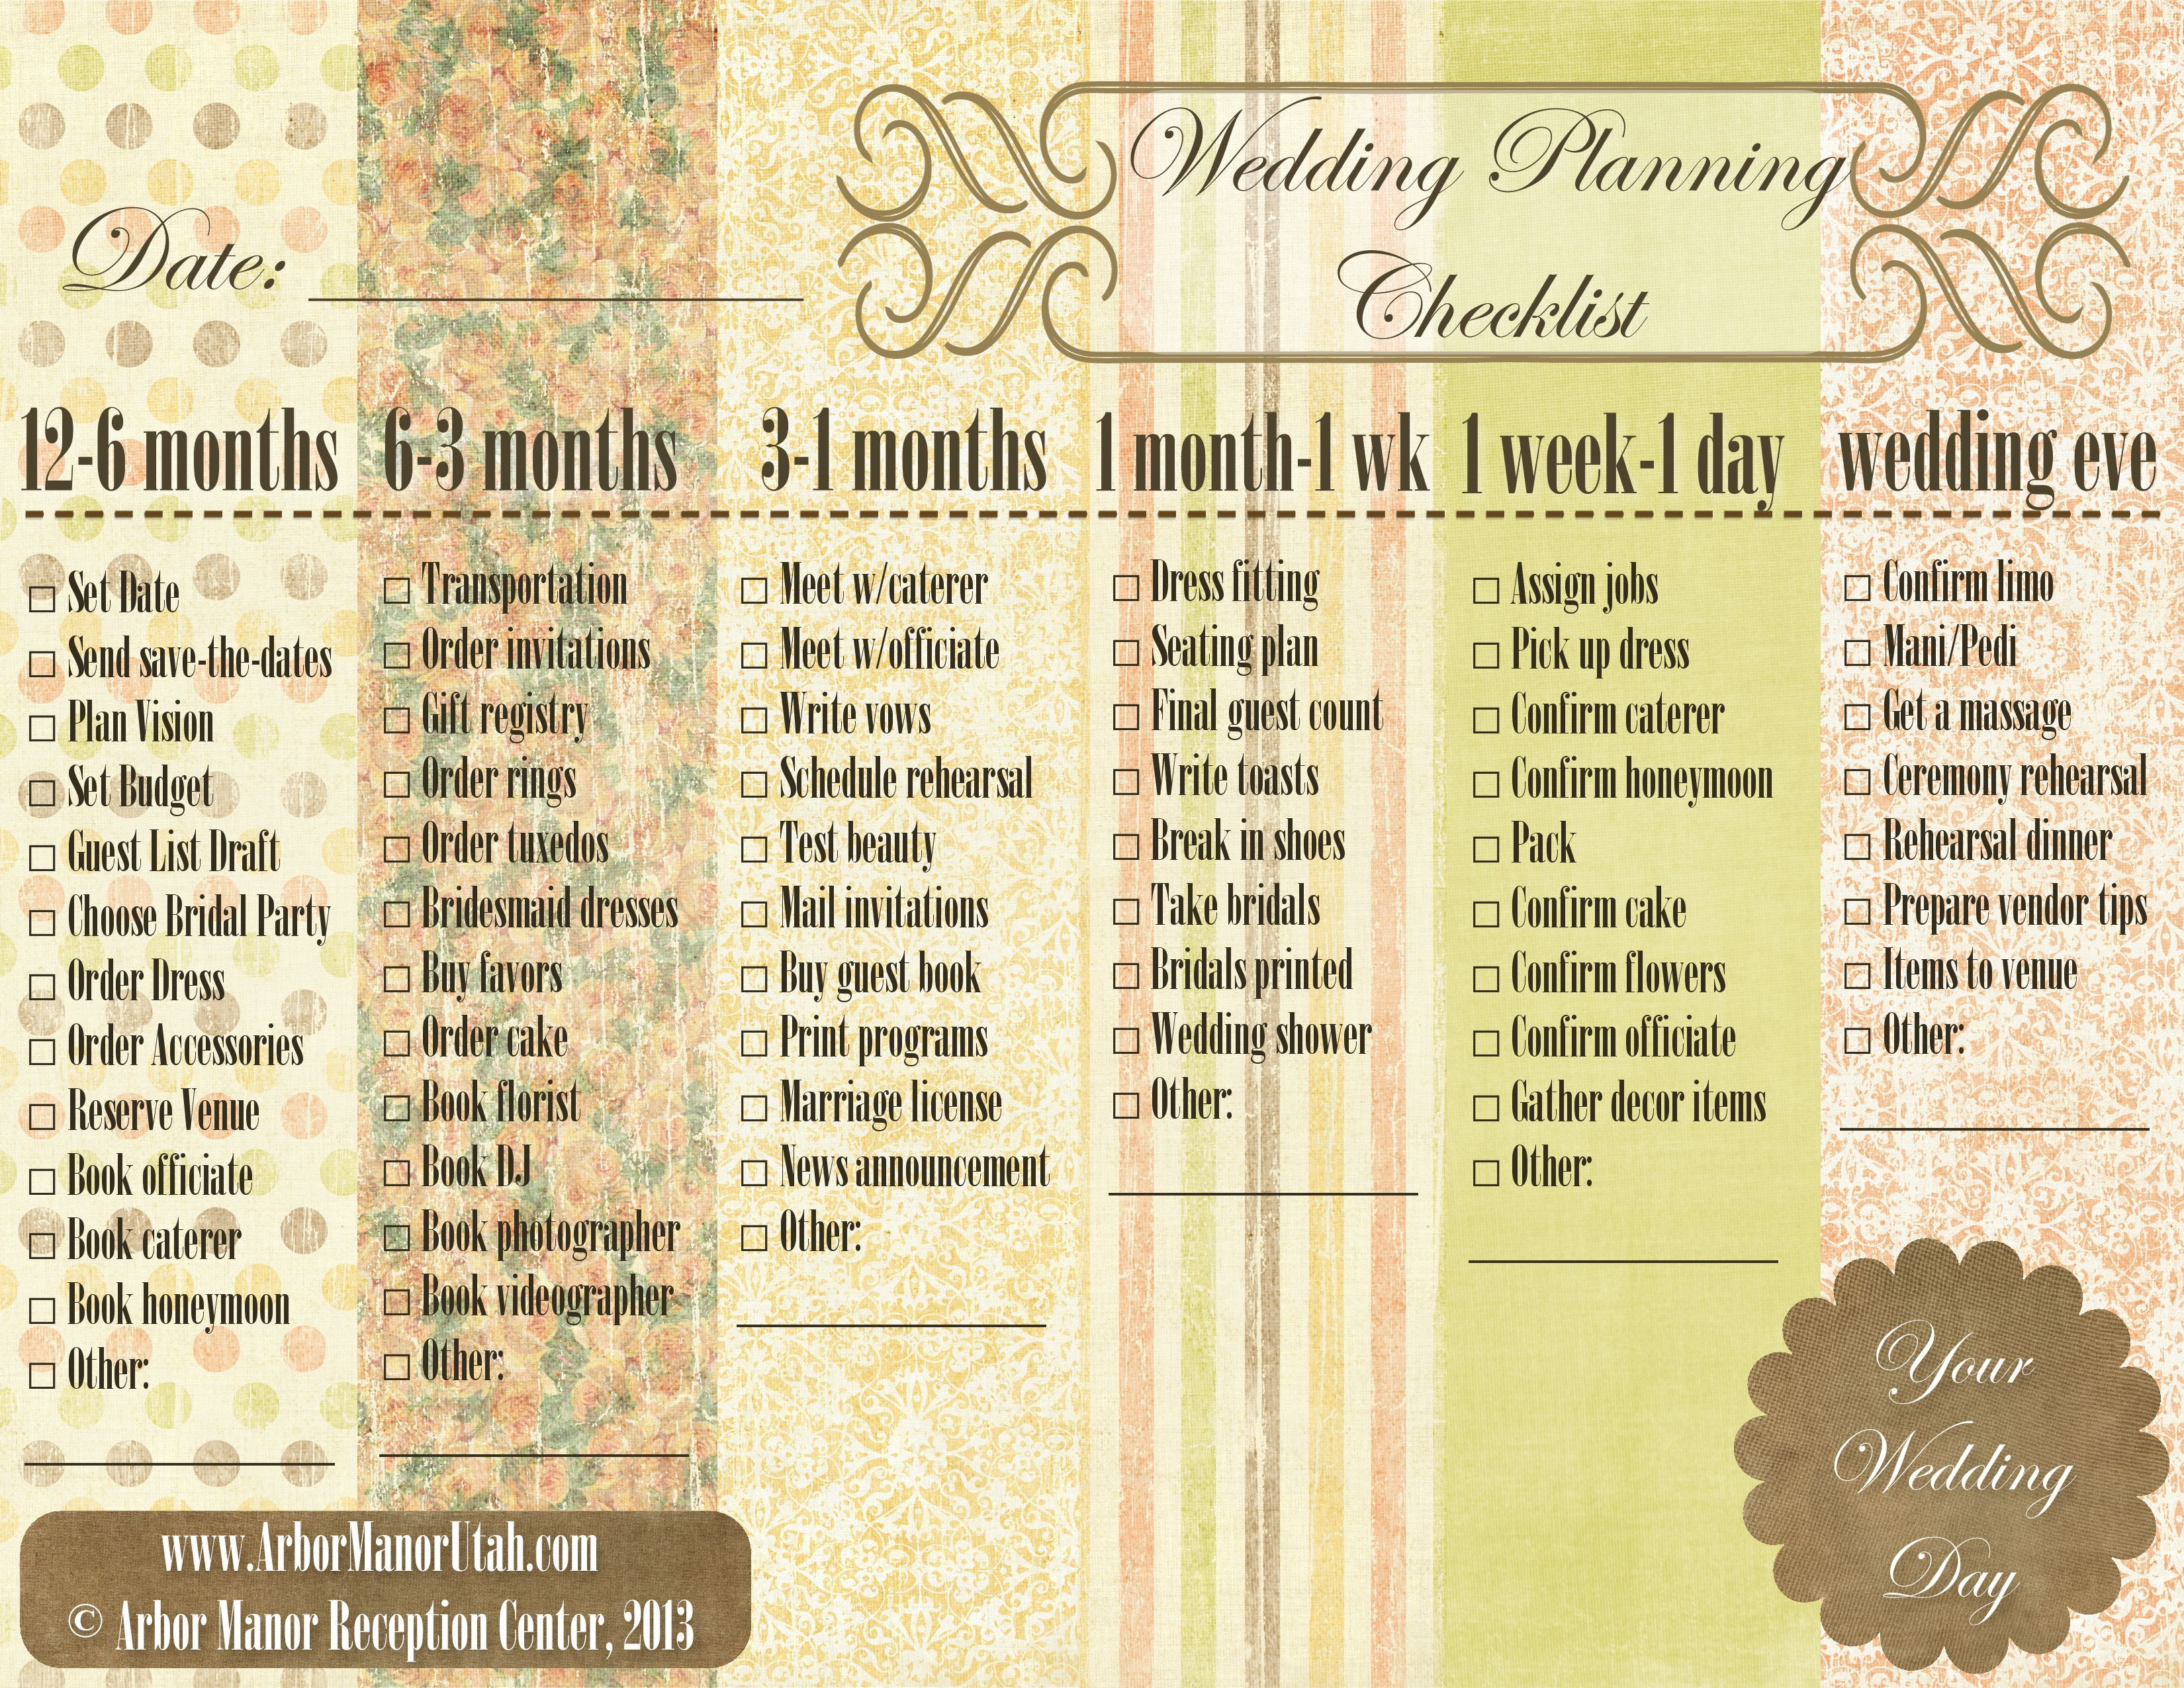 A Simple, Easy #wedding Planning #checklist For Your